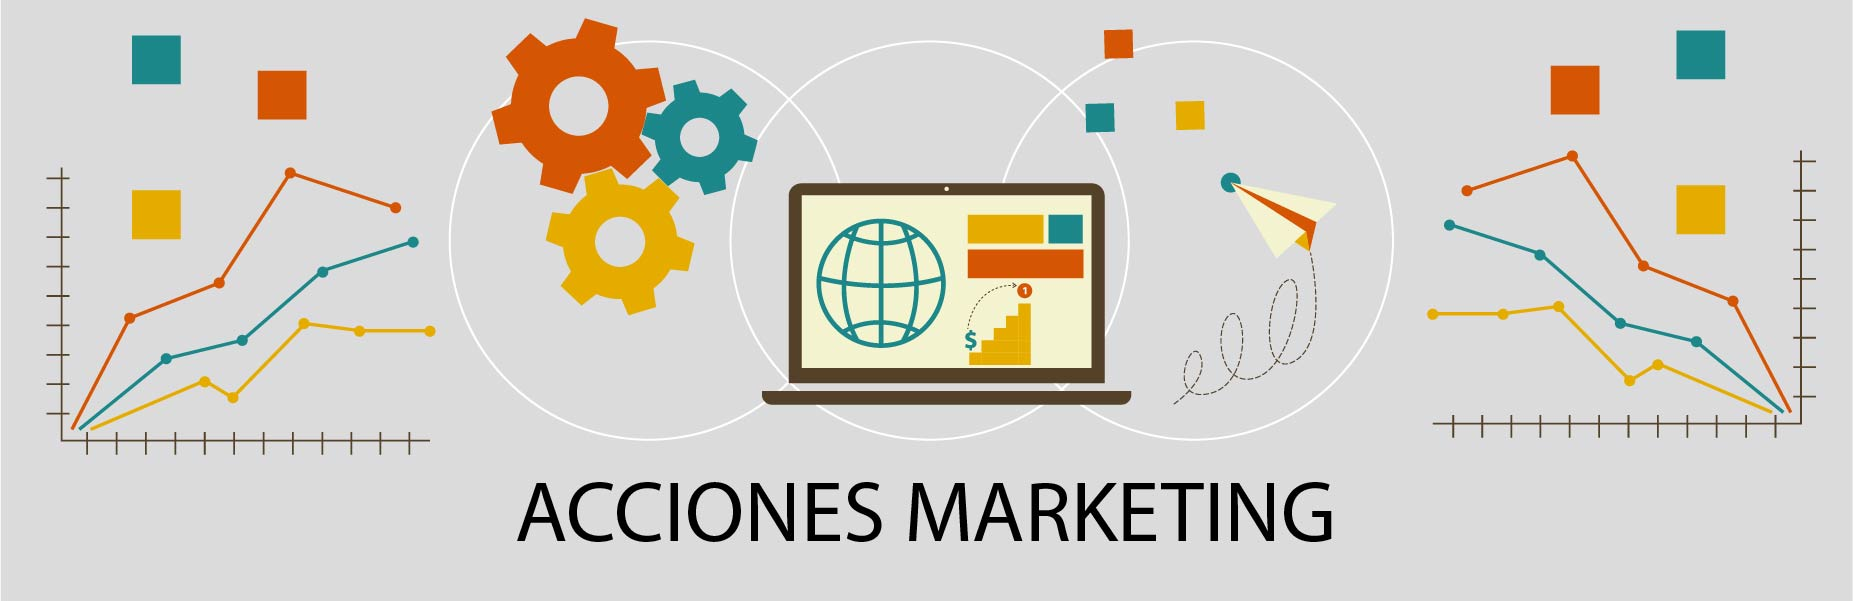 marketingonlineacciones